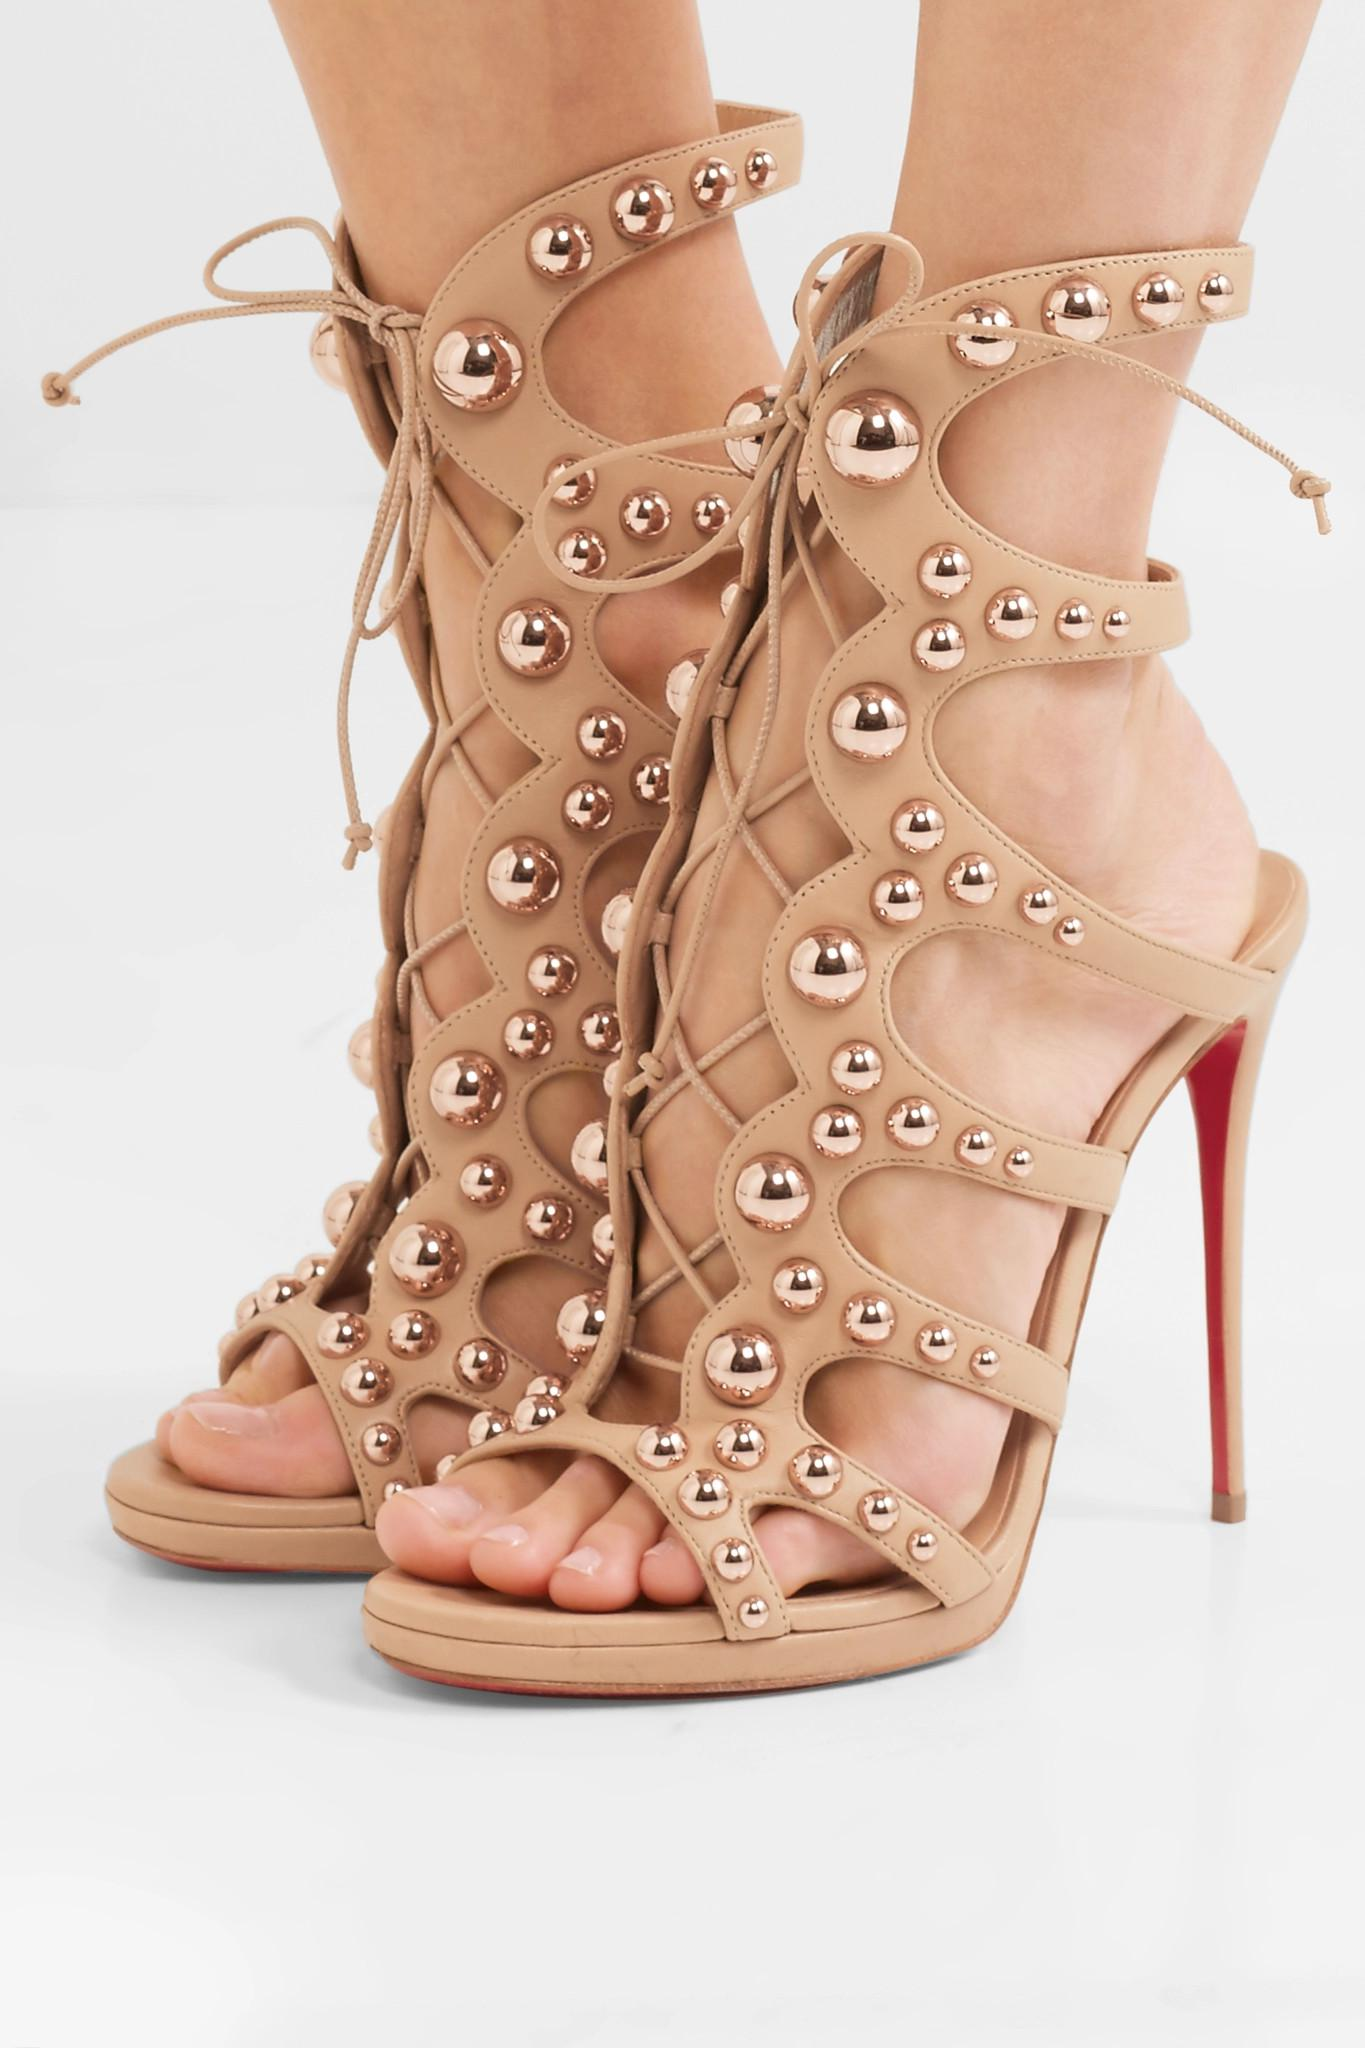 ecd6cfd295a Christian Louboutin - Multicolor Amazoubille 120 Studded Leather Sandals -  Lyst. View fullscreen